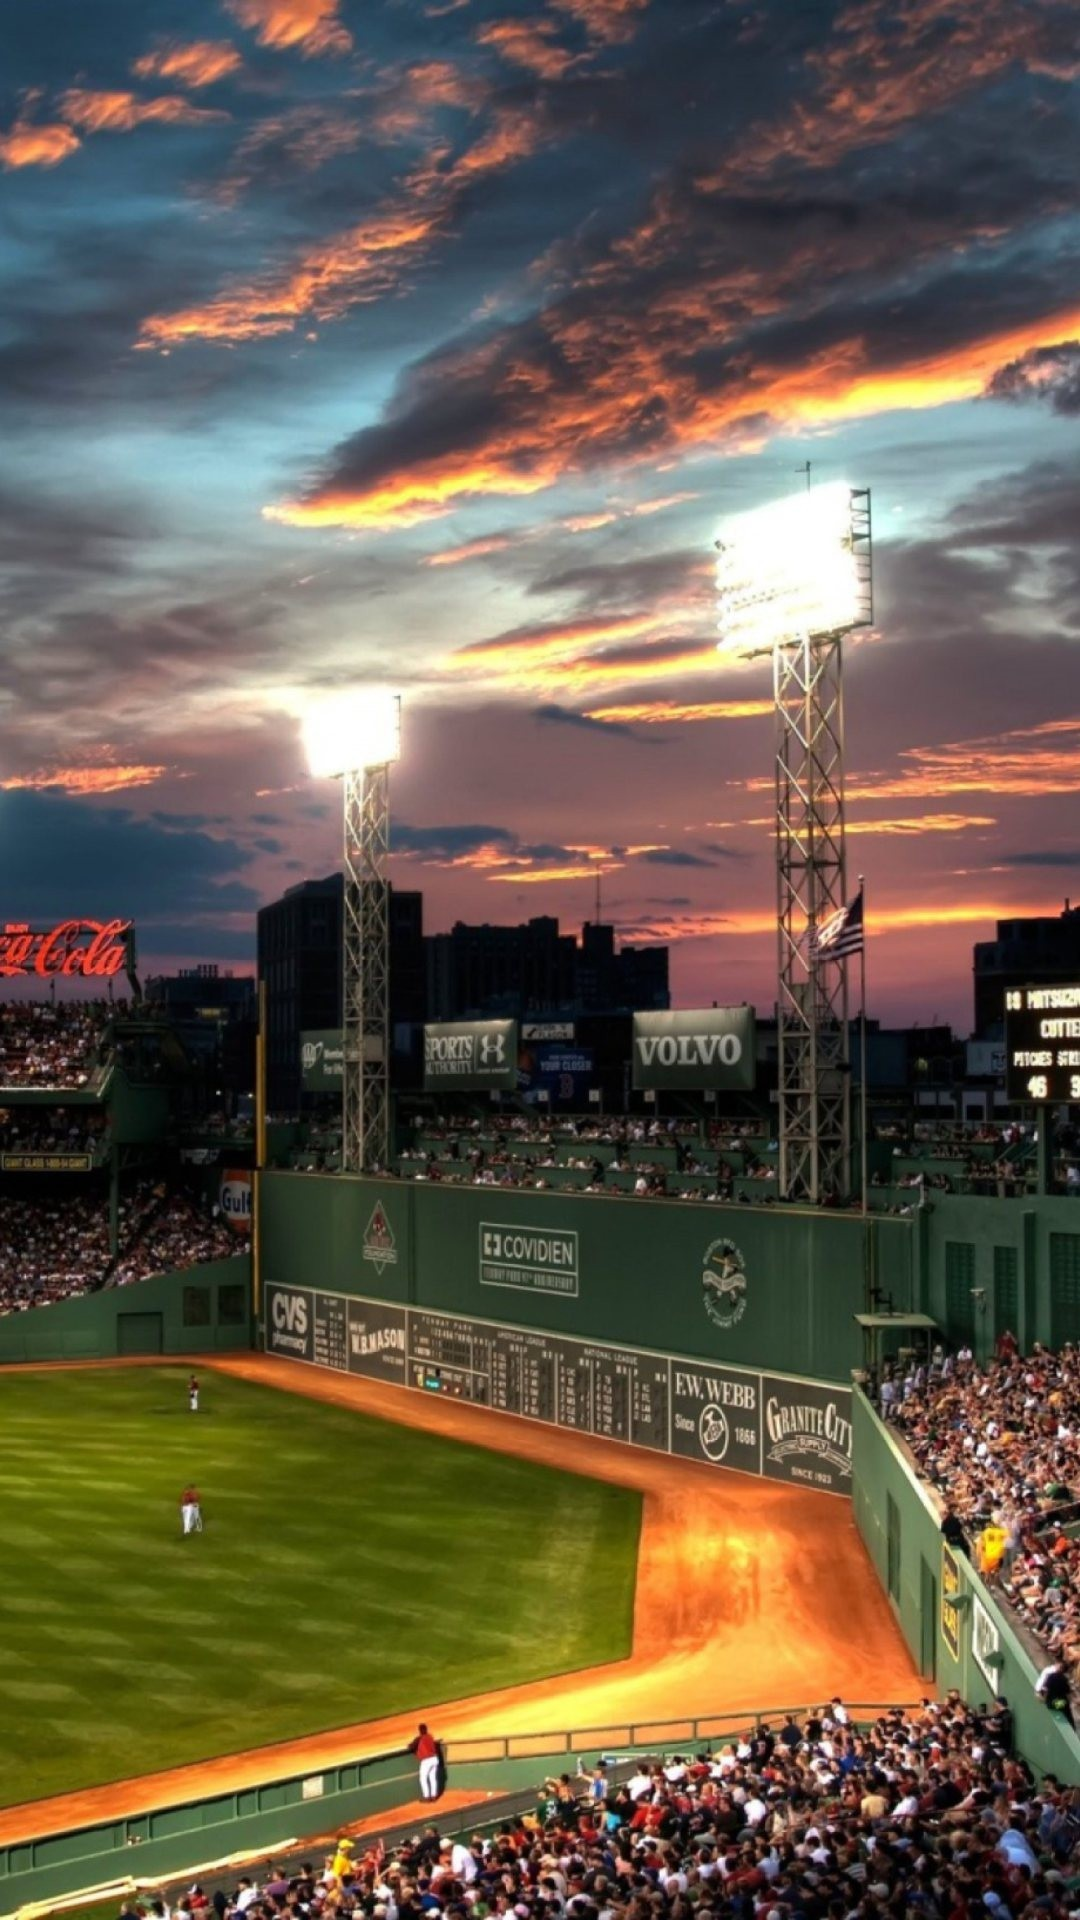 Red Sox Wallpaper Iphone X Sports Hd Wallpapers For Galaxy S4 S5 Wallpapers Pictures